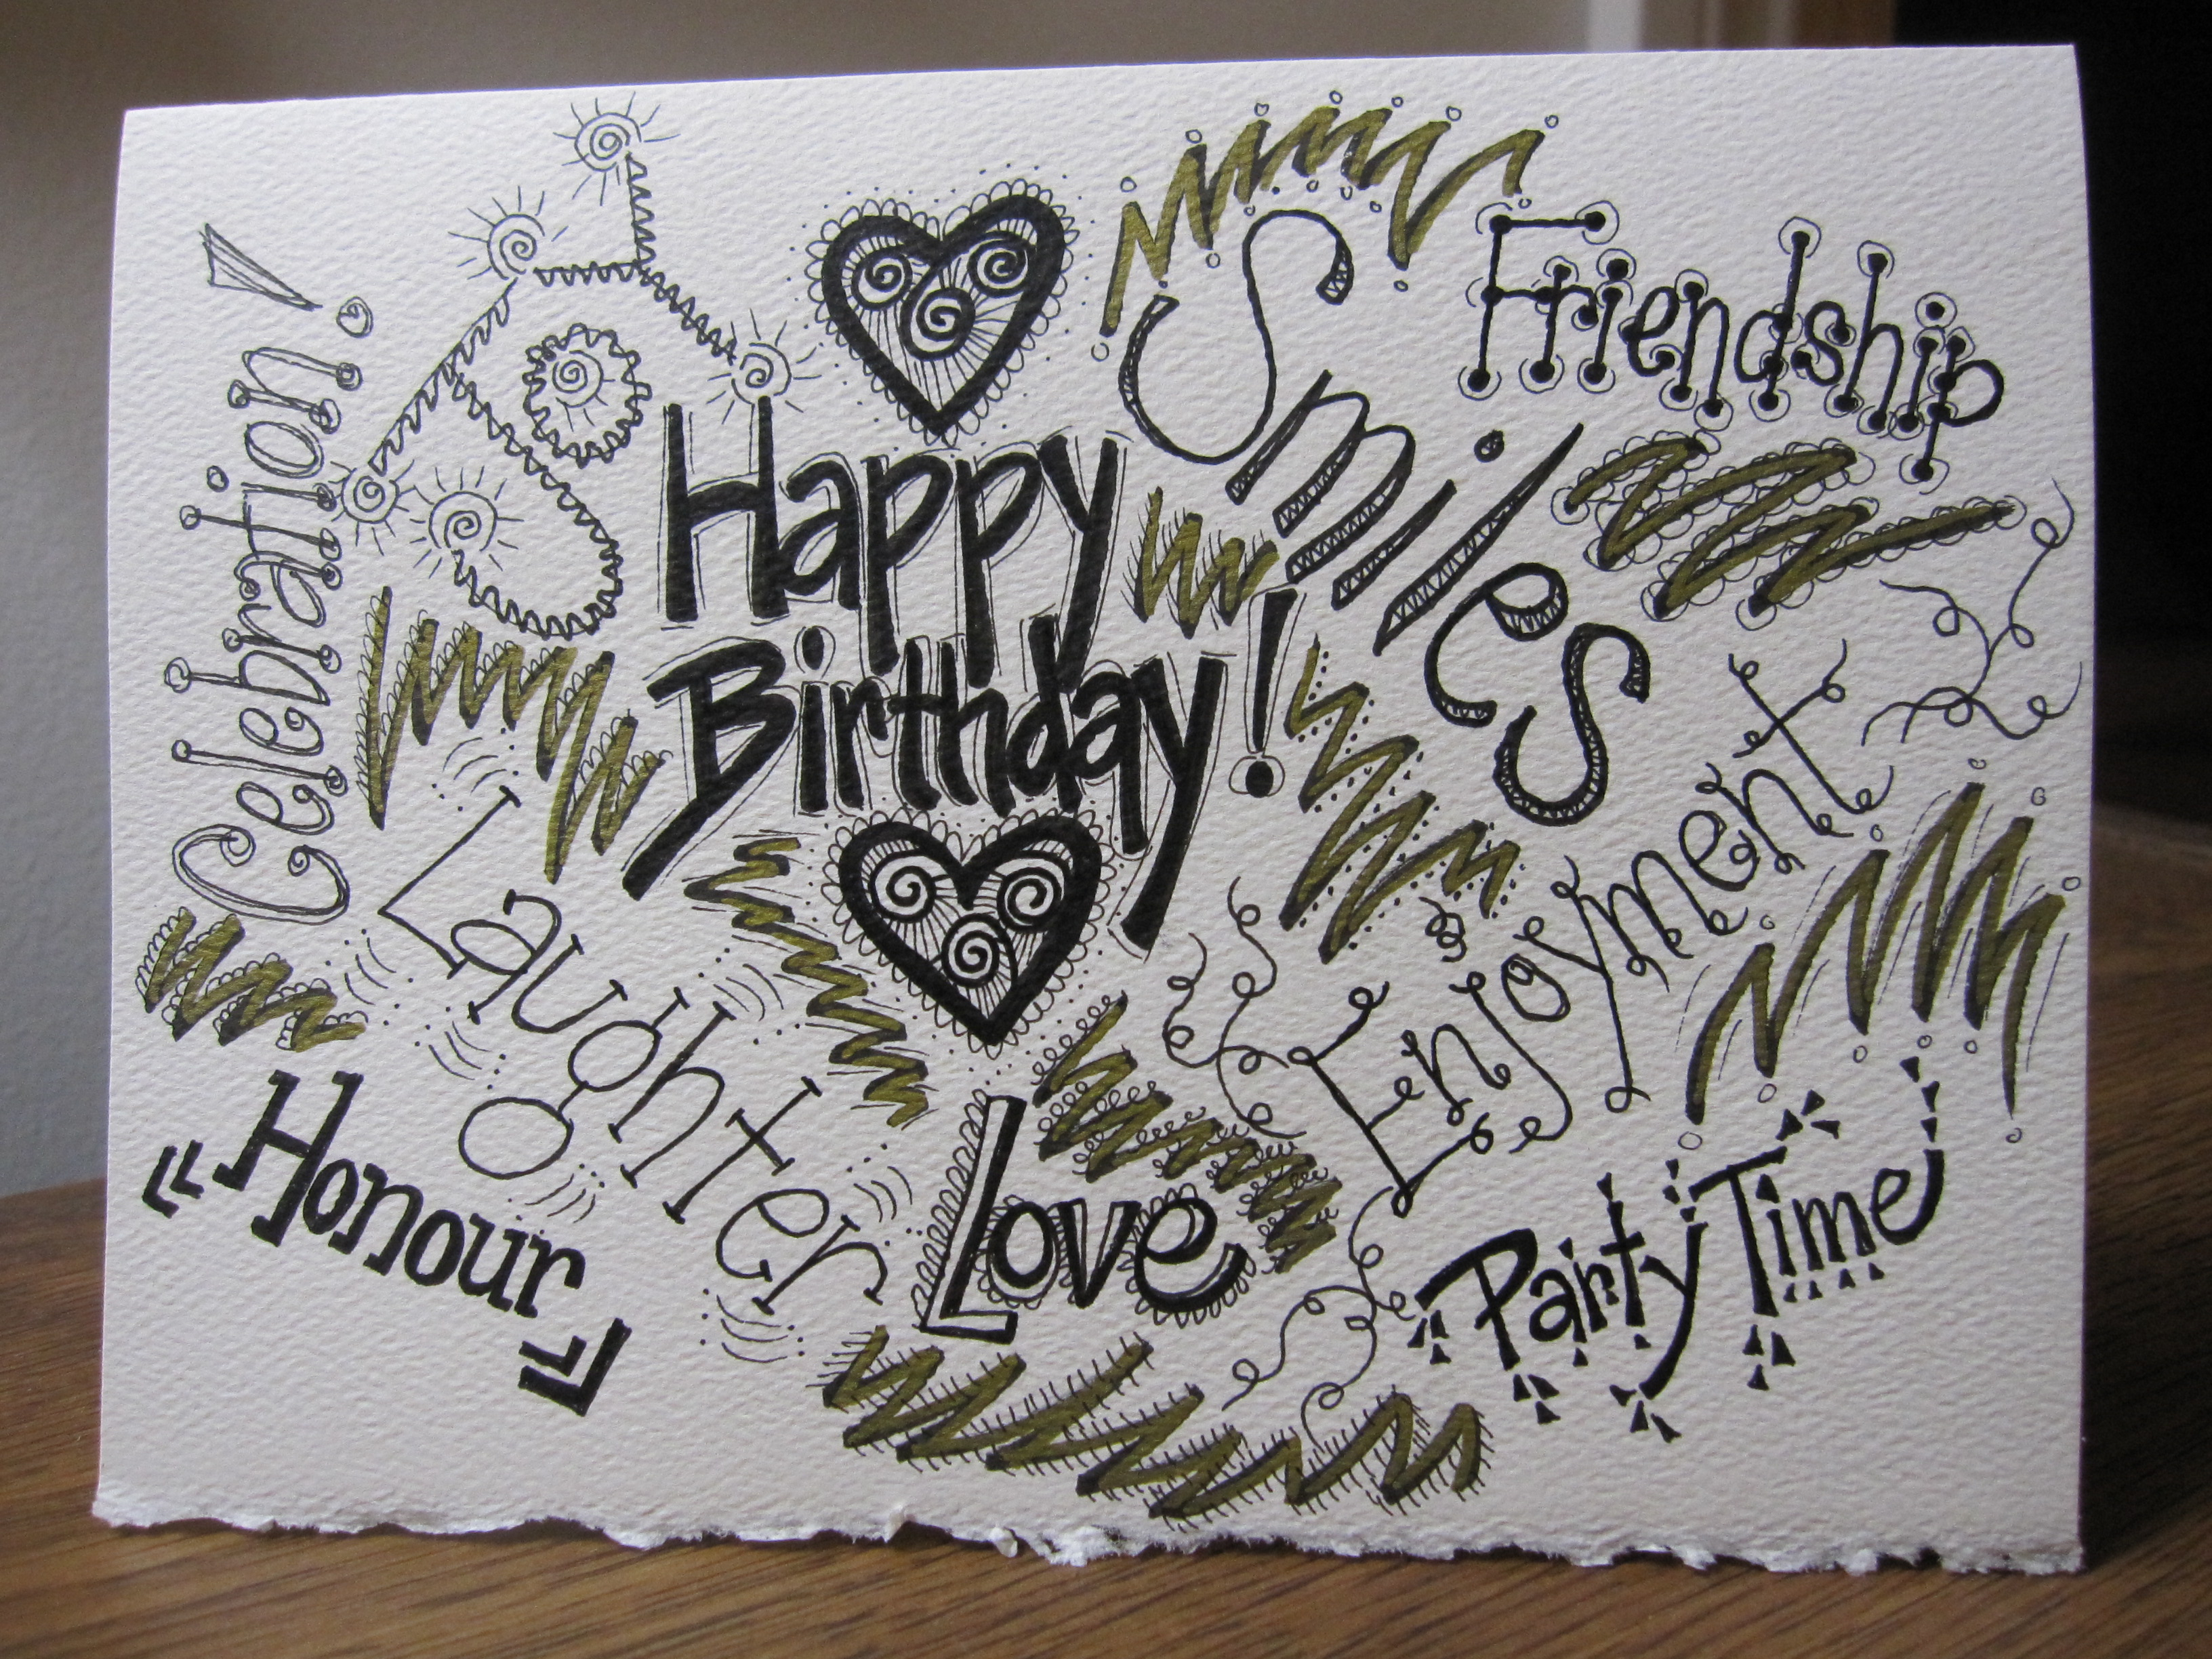 birthday card design drawing ; Drawings-On-Birthday-Cards-for-a-awesome-birthday-Card-design-with-awesome-layout-7